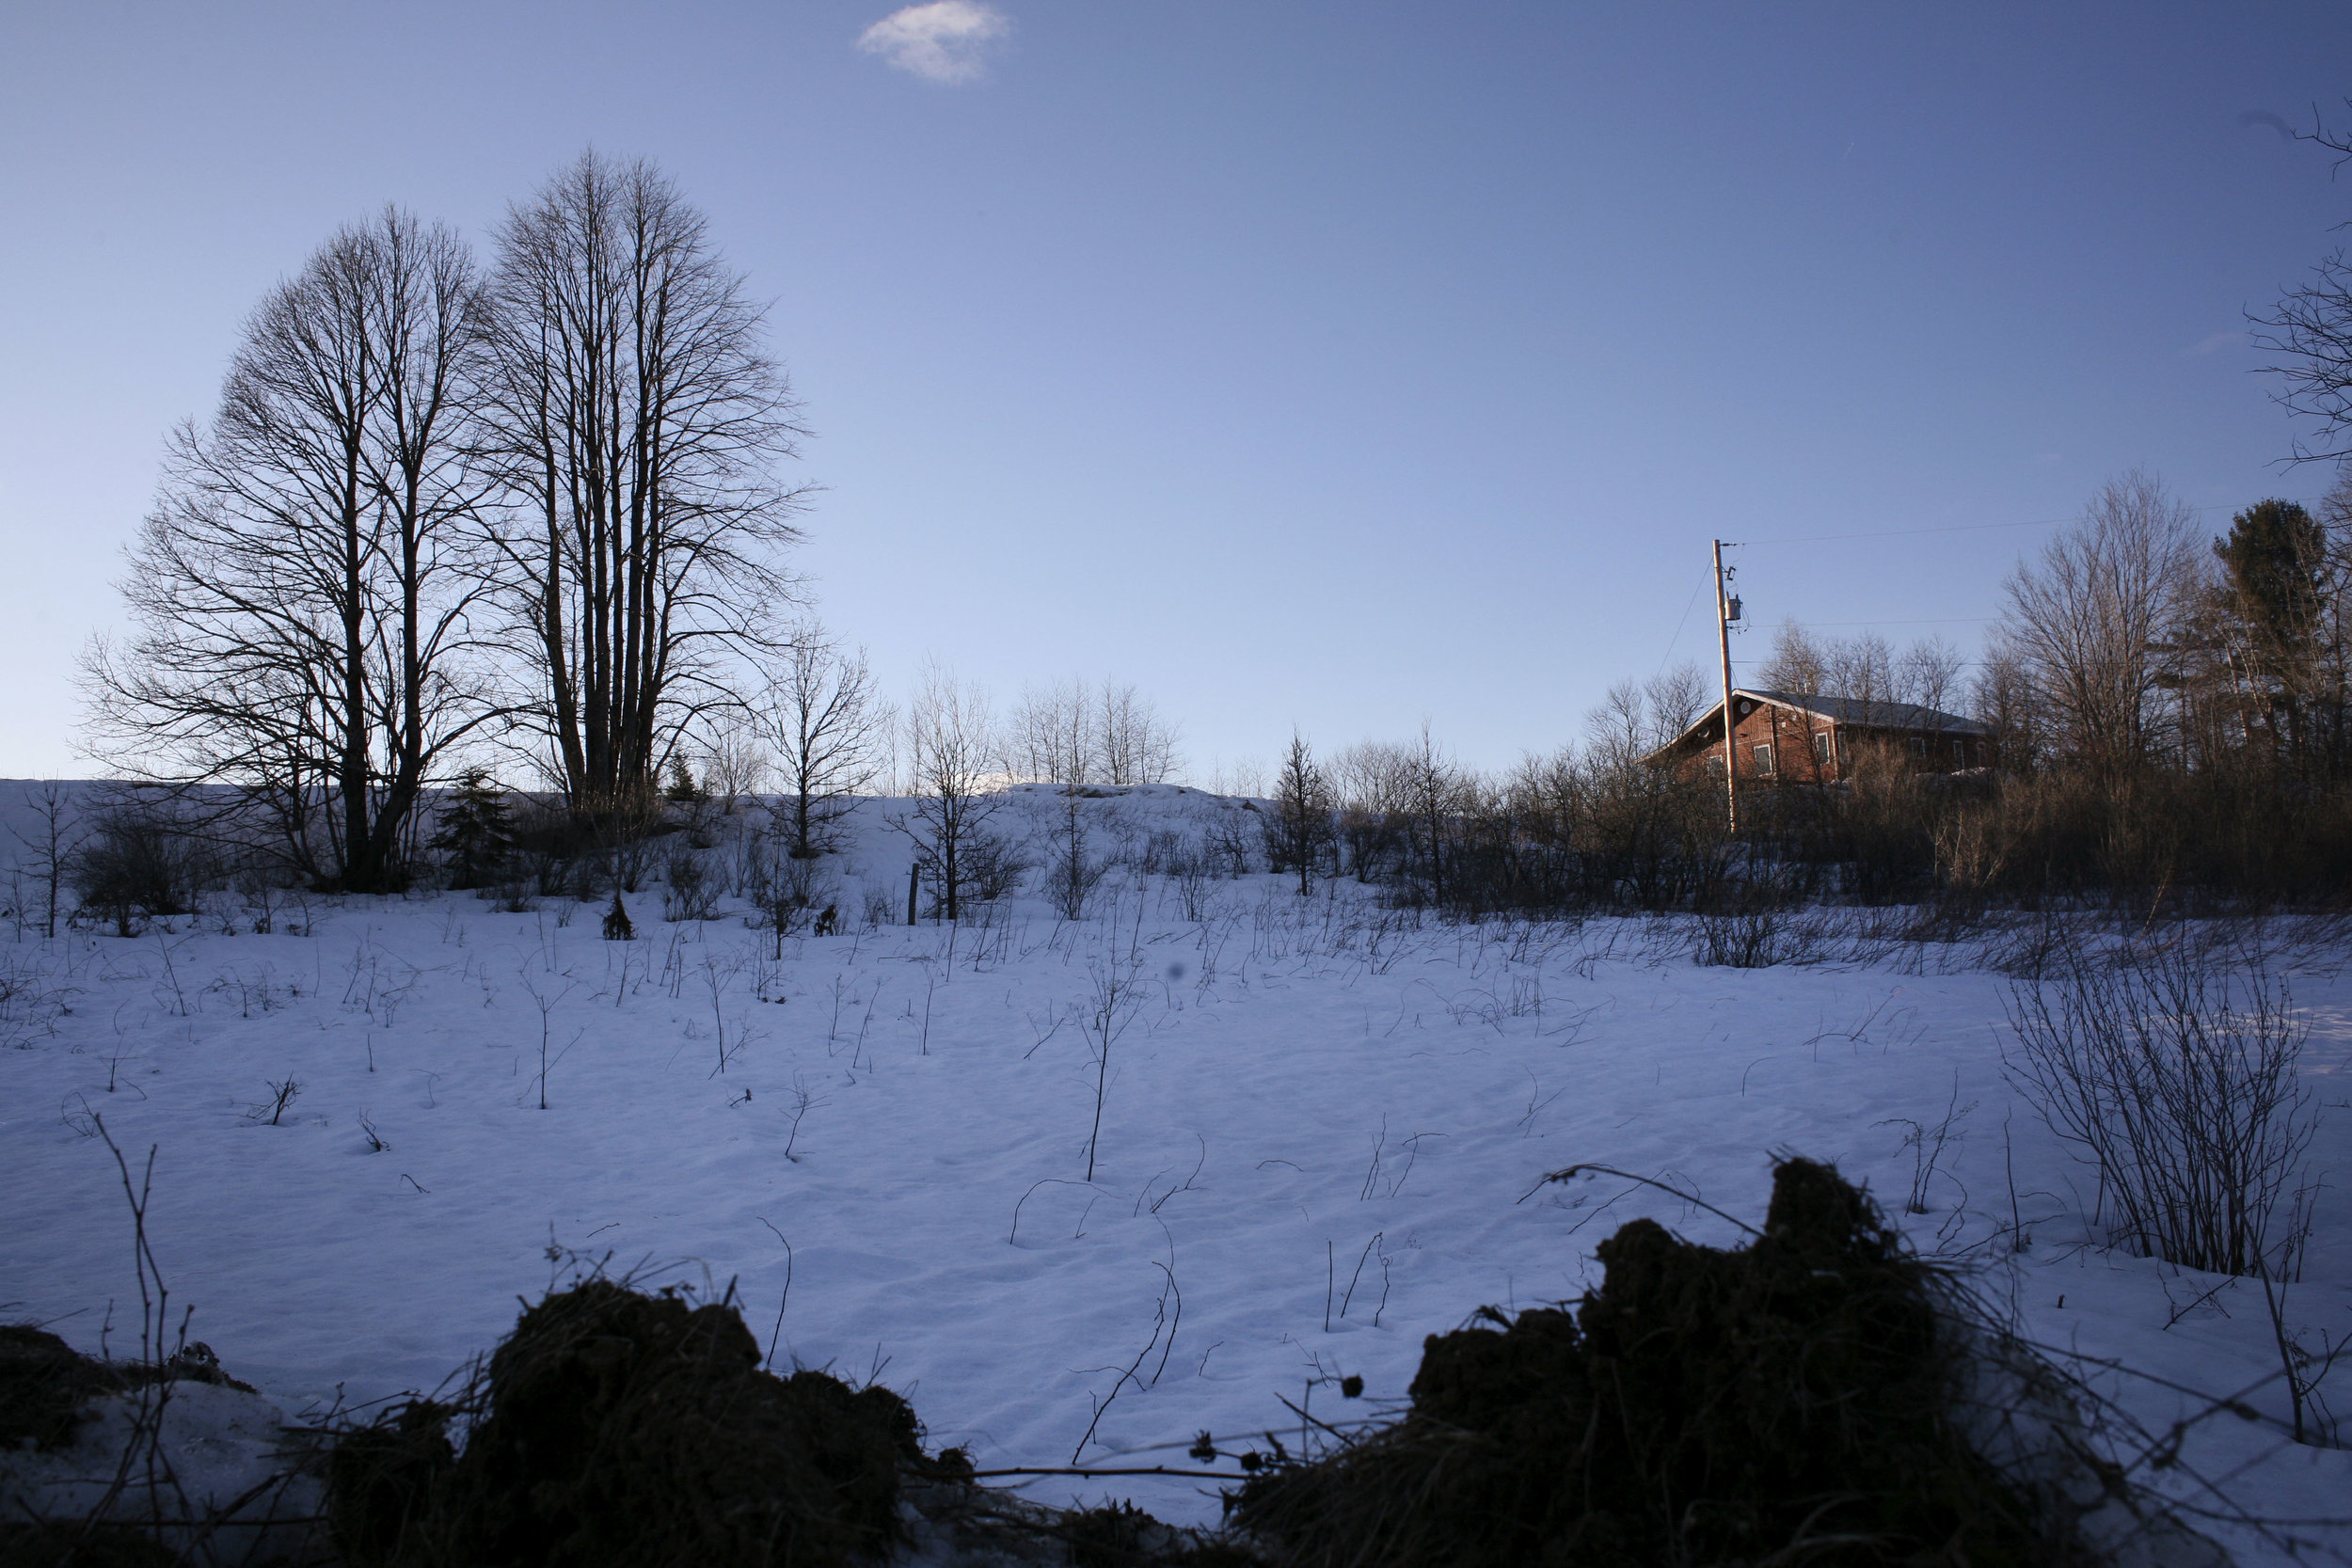 A distant view of Laurie Odjick's home on the Kitigan Zibi reserve. While she was initially frustrated with how the reserve police handled her daughter's case, Laurie says she now has a good relationship with the lead investigator from Québec's provincial police force, which is leading the investigation. Maisy's case is now with the homicide division.(DEVON HAYNIE FOR USN&WR)